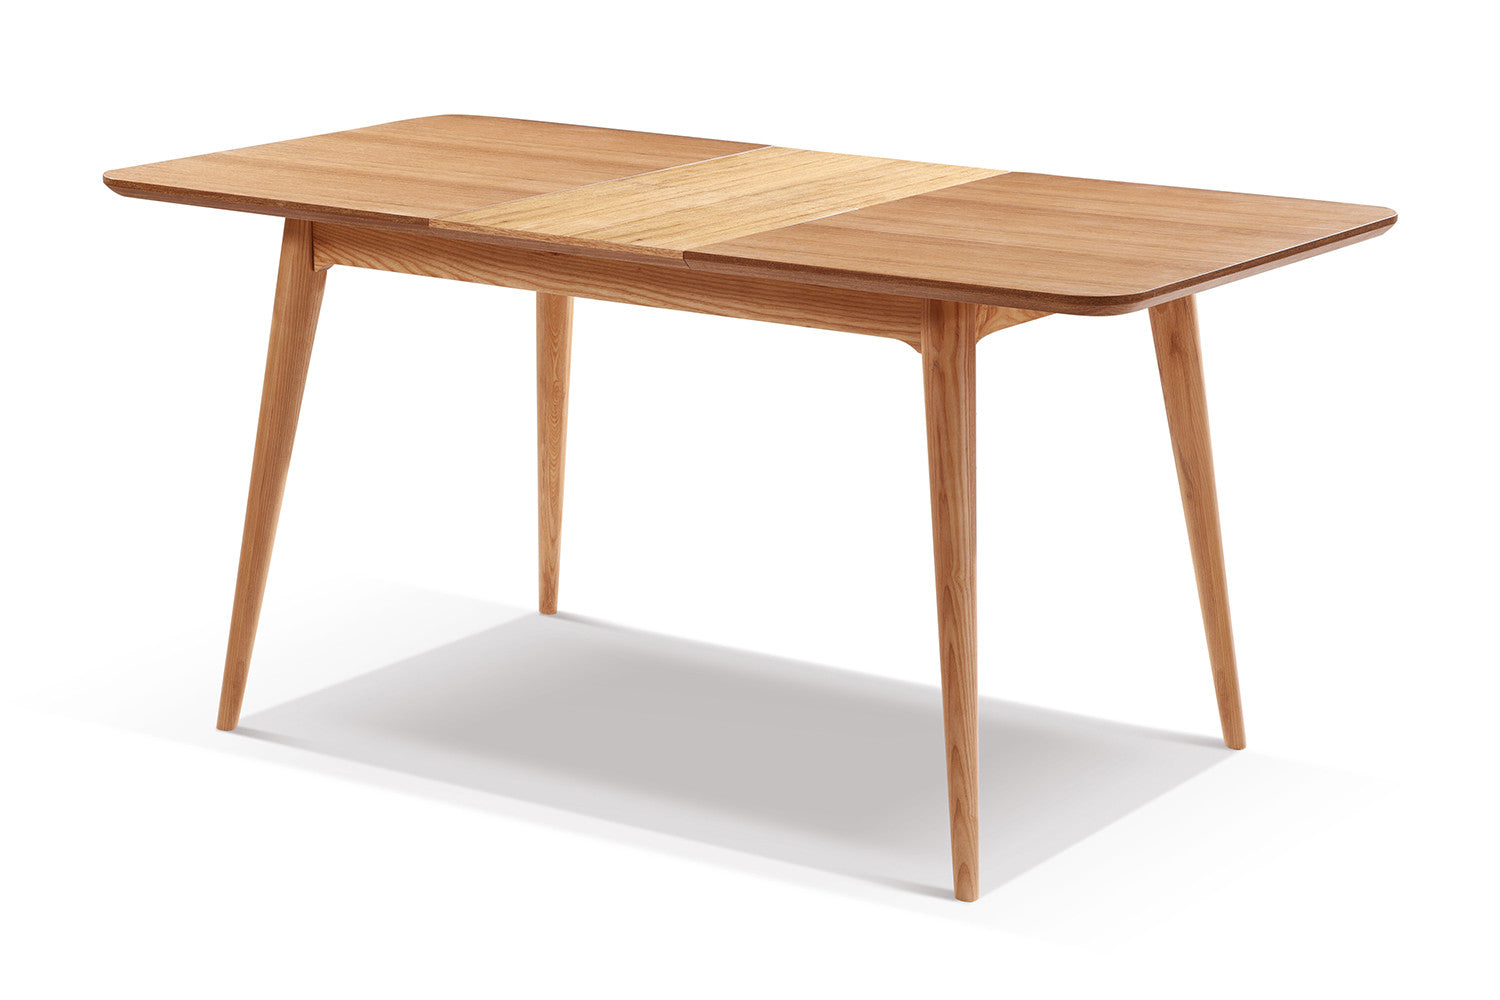 Table de salle manger extensible en bois adda dewarens for Table salle a manger extensible design